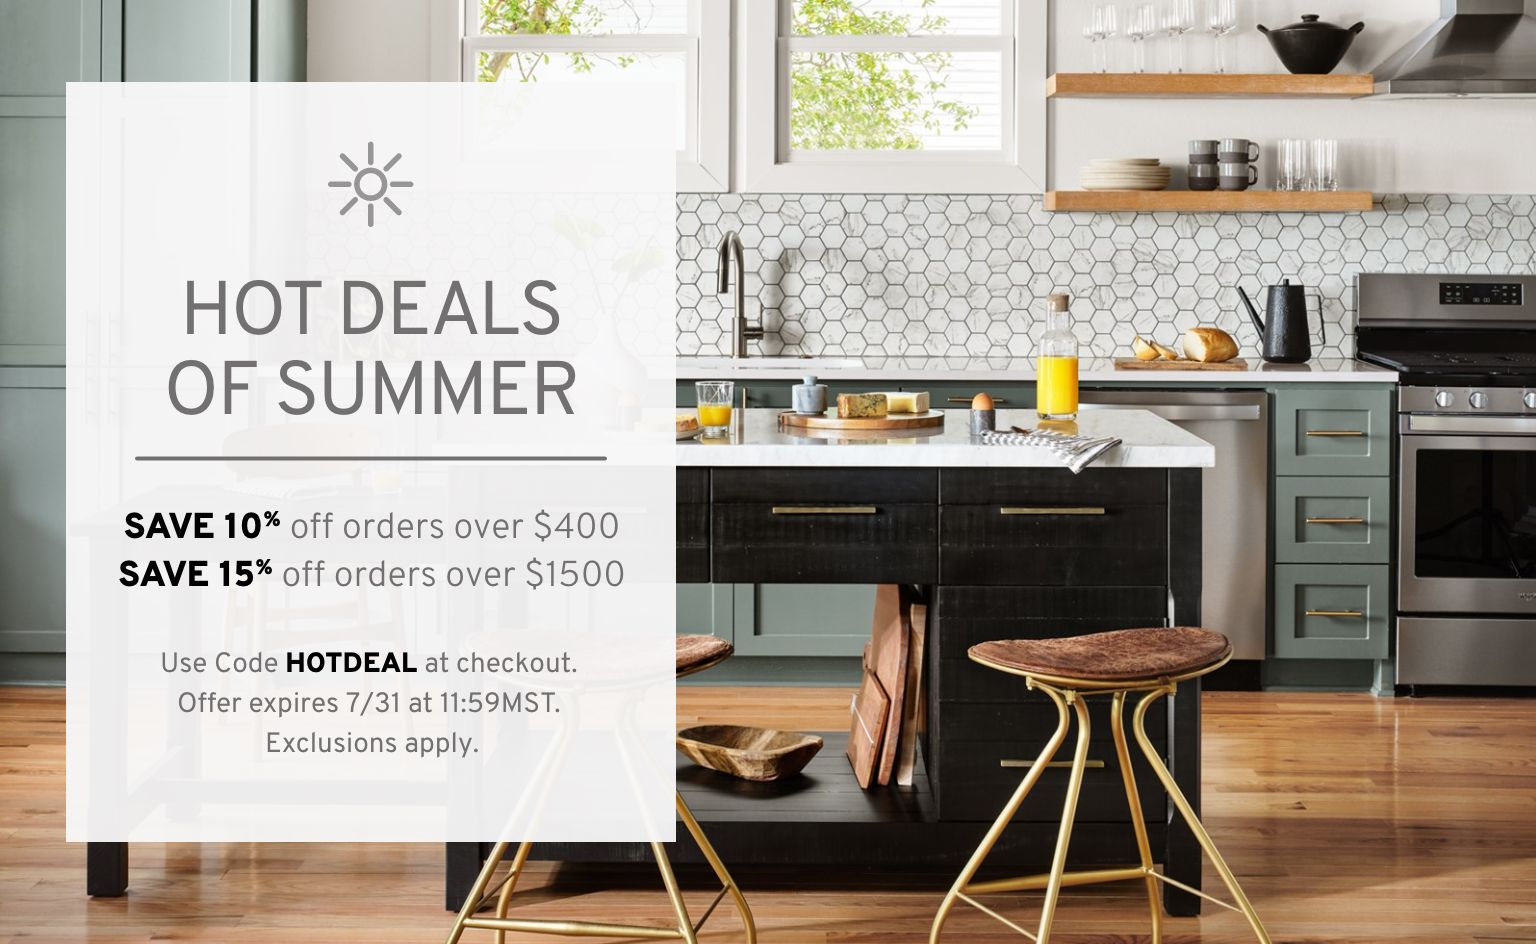 Hot Deals Of Summer - Save 10% off $400 - Save 15% off $1500